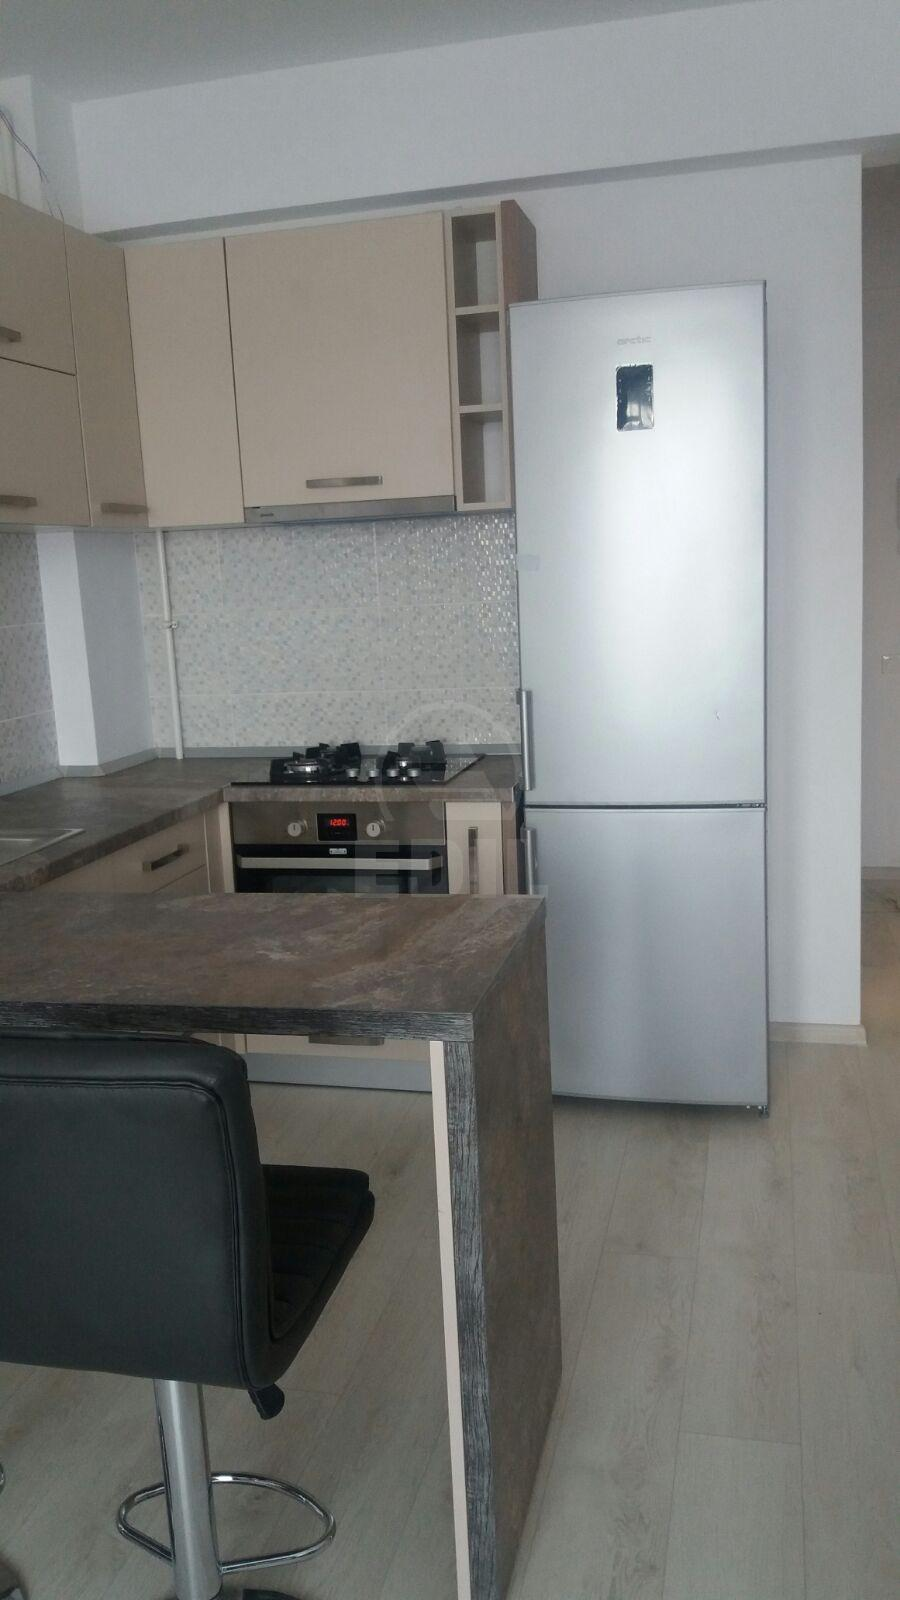 Apartment for rent 2 rooms, APCJ279074-4